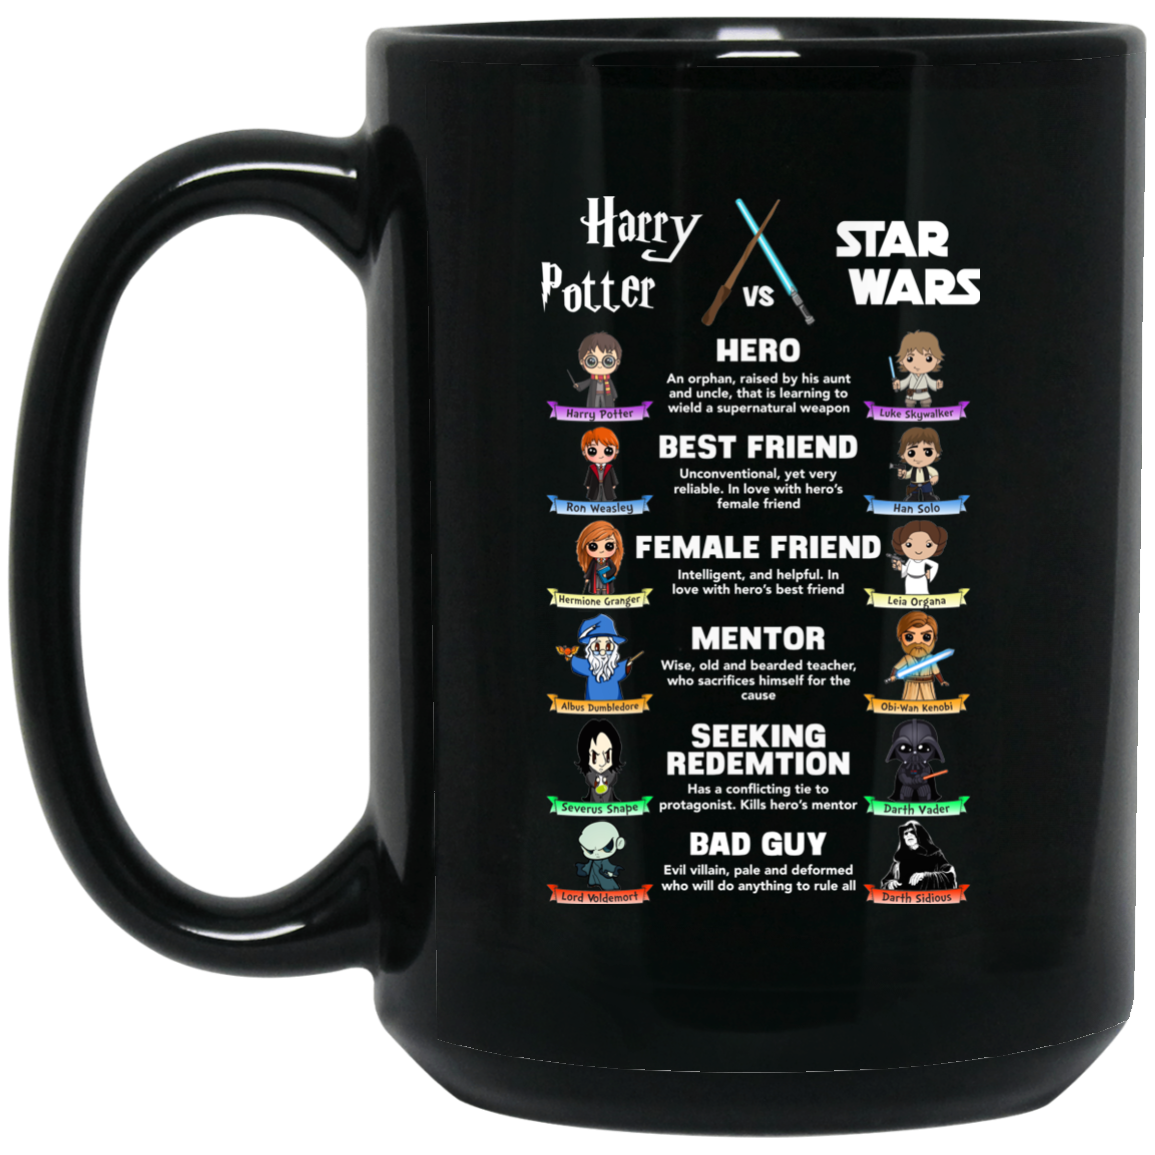 image 361px Harry Potter vs Star Wars: Hero, Best Friend, Female Friend Coffee Mug